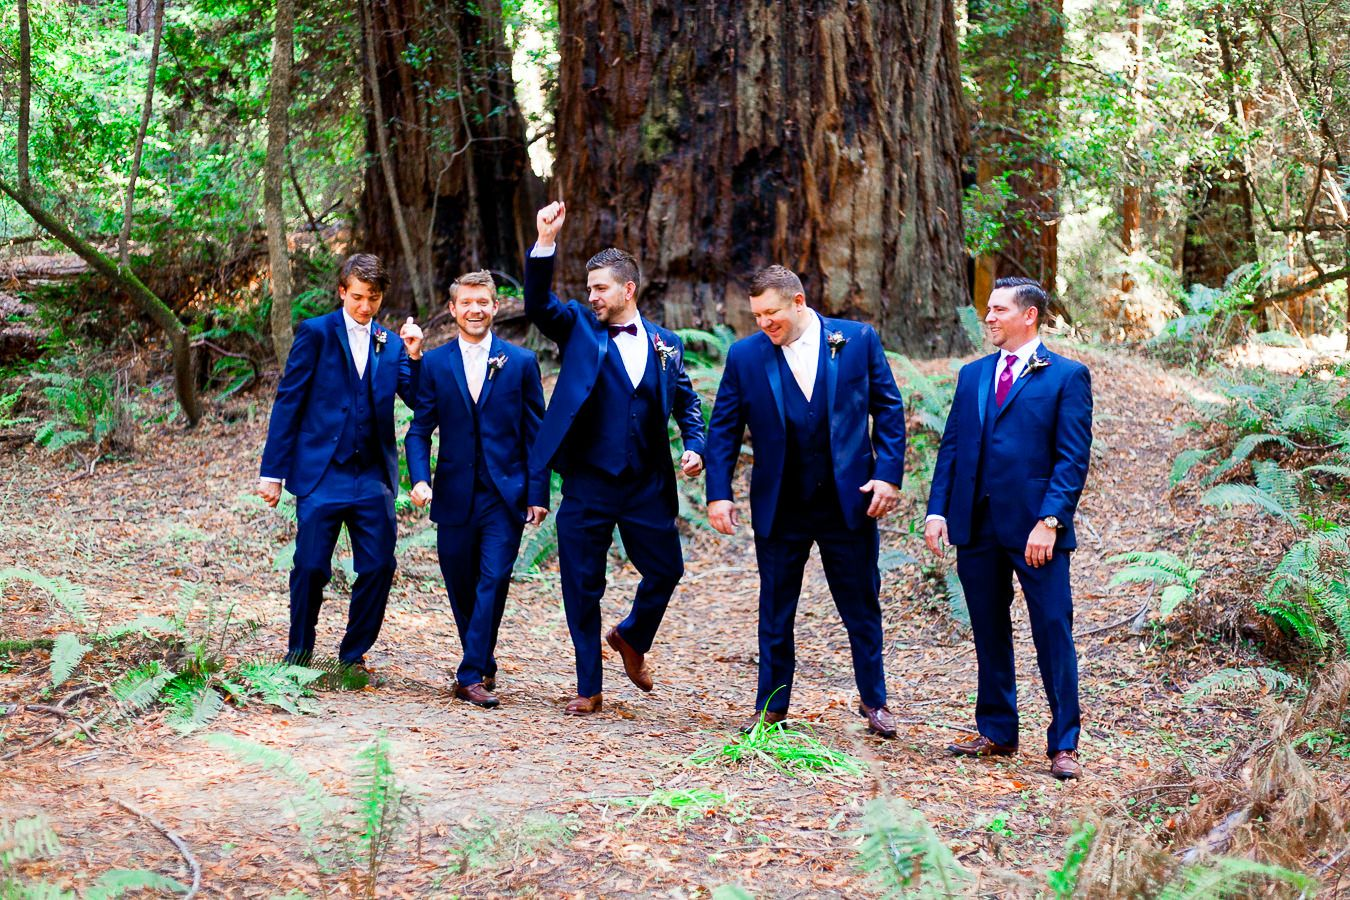 groomsmen and groom in navy suits walk through Hendy Woods State Park in Northern California Redwoods